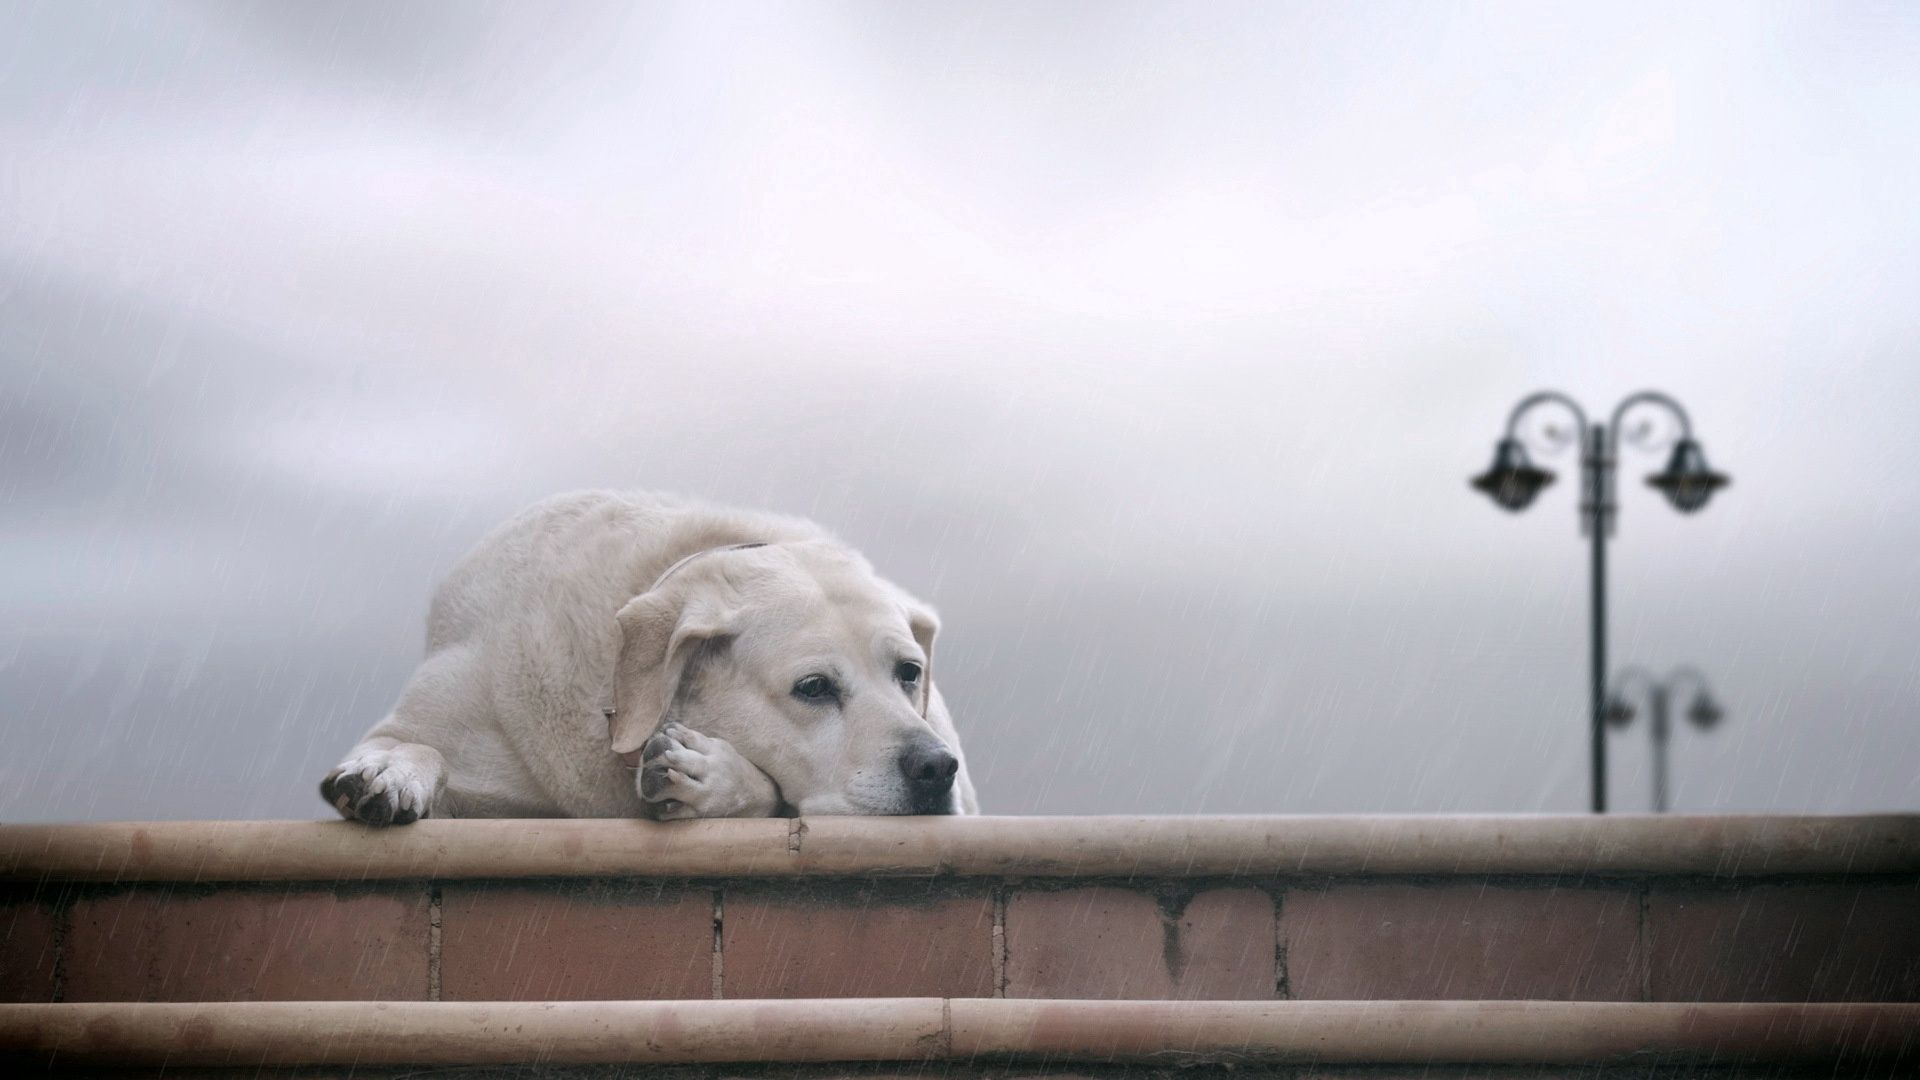 122805 download wallpaper Animals, Dog, Labrador, To Lie Down, Lie, Fog, Expectation, Waiting, Sadness, Sorrow screensavers and pictures for free